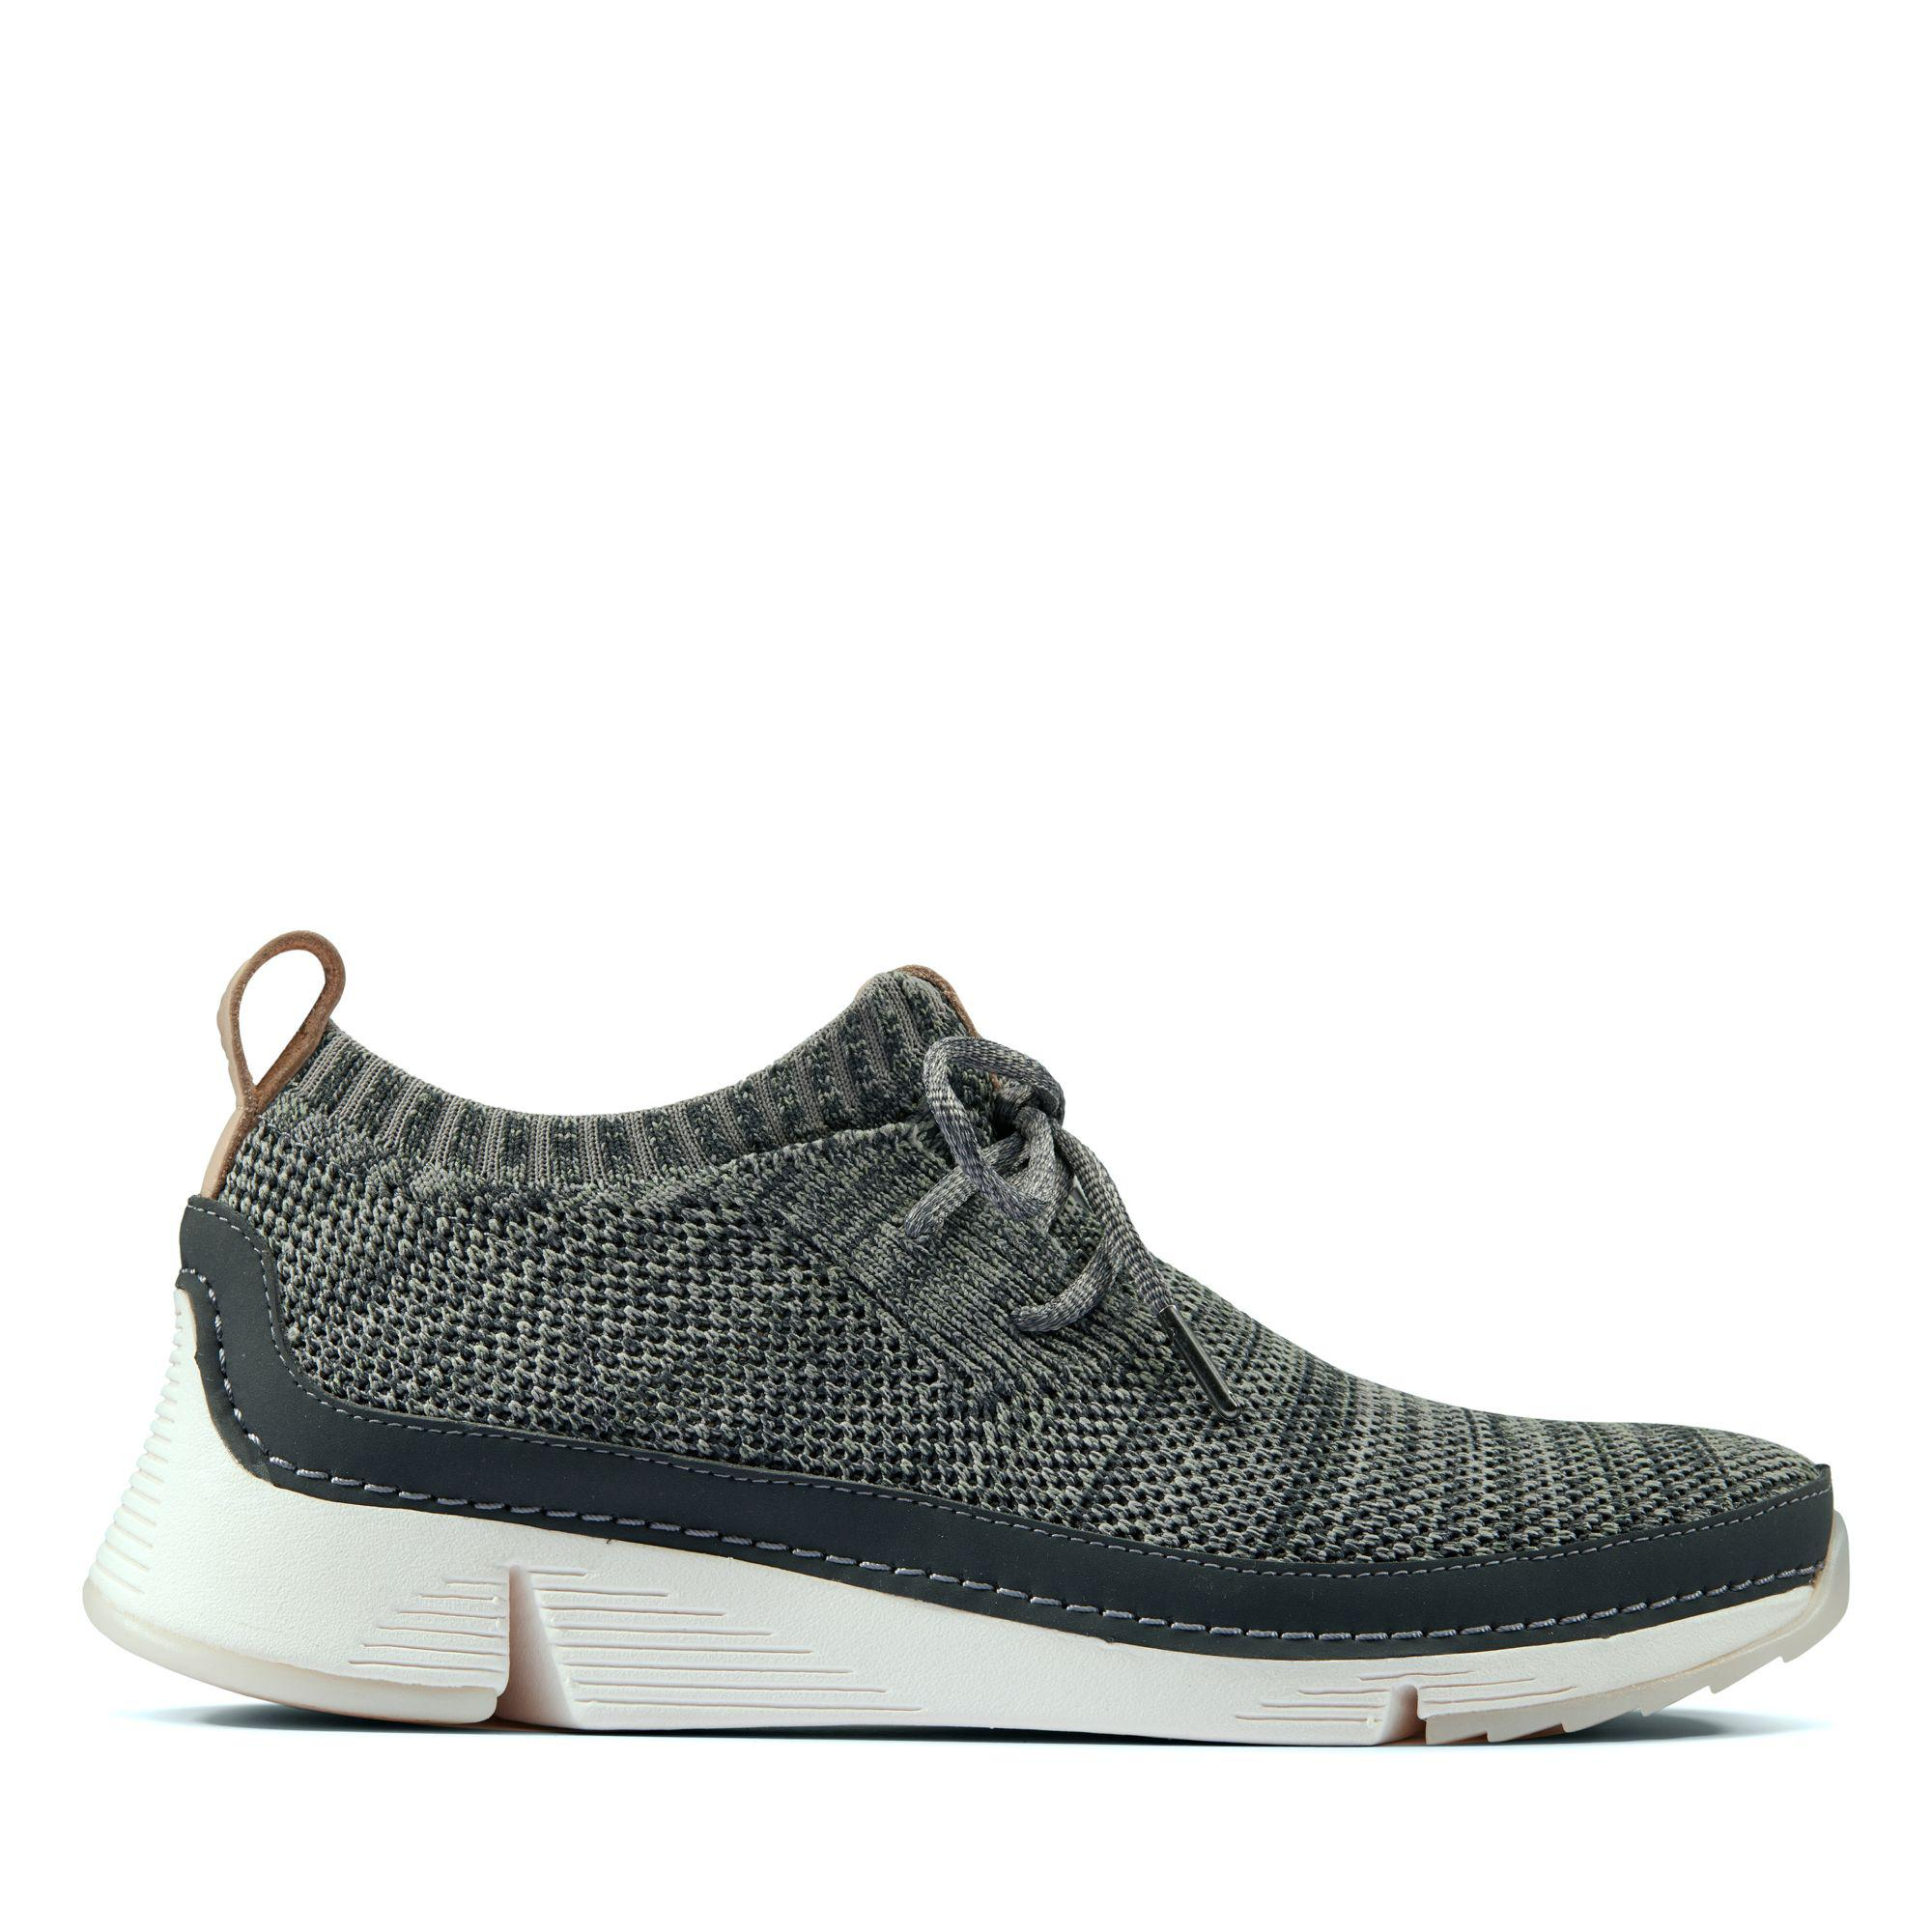 Clarks Women's Tri Native. Low-Top Sneakers Popular Sale Online Sale 2018 New Free Shipping Get To Buy Sale pzAIeL